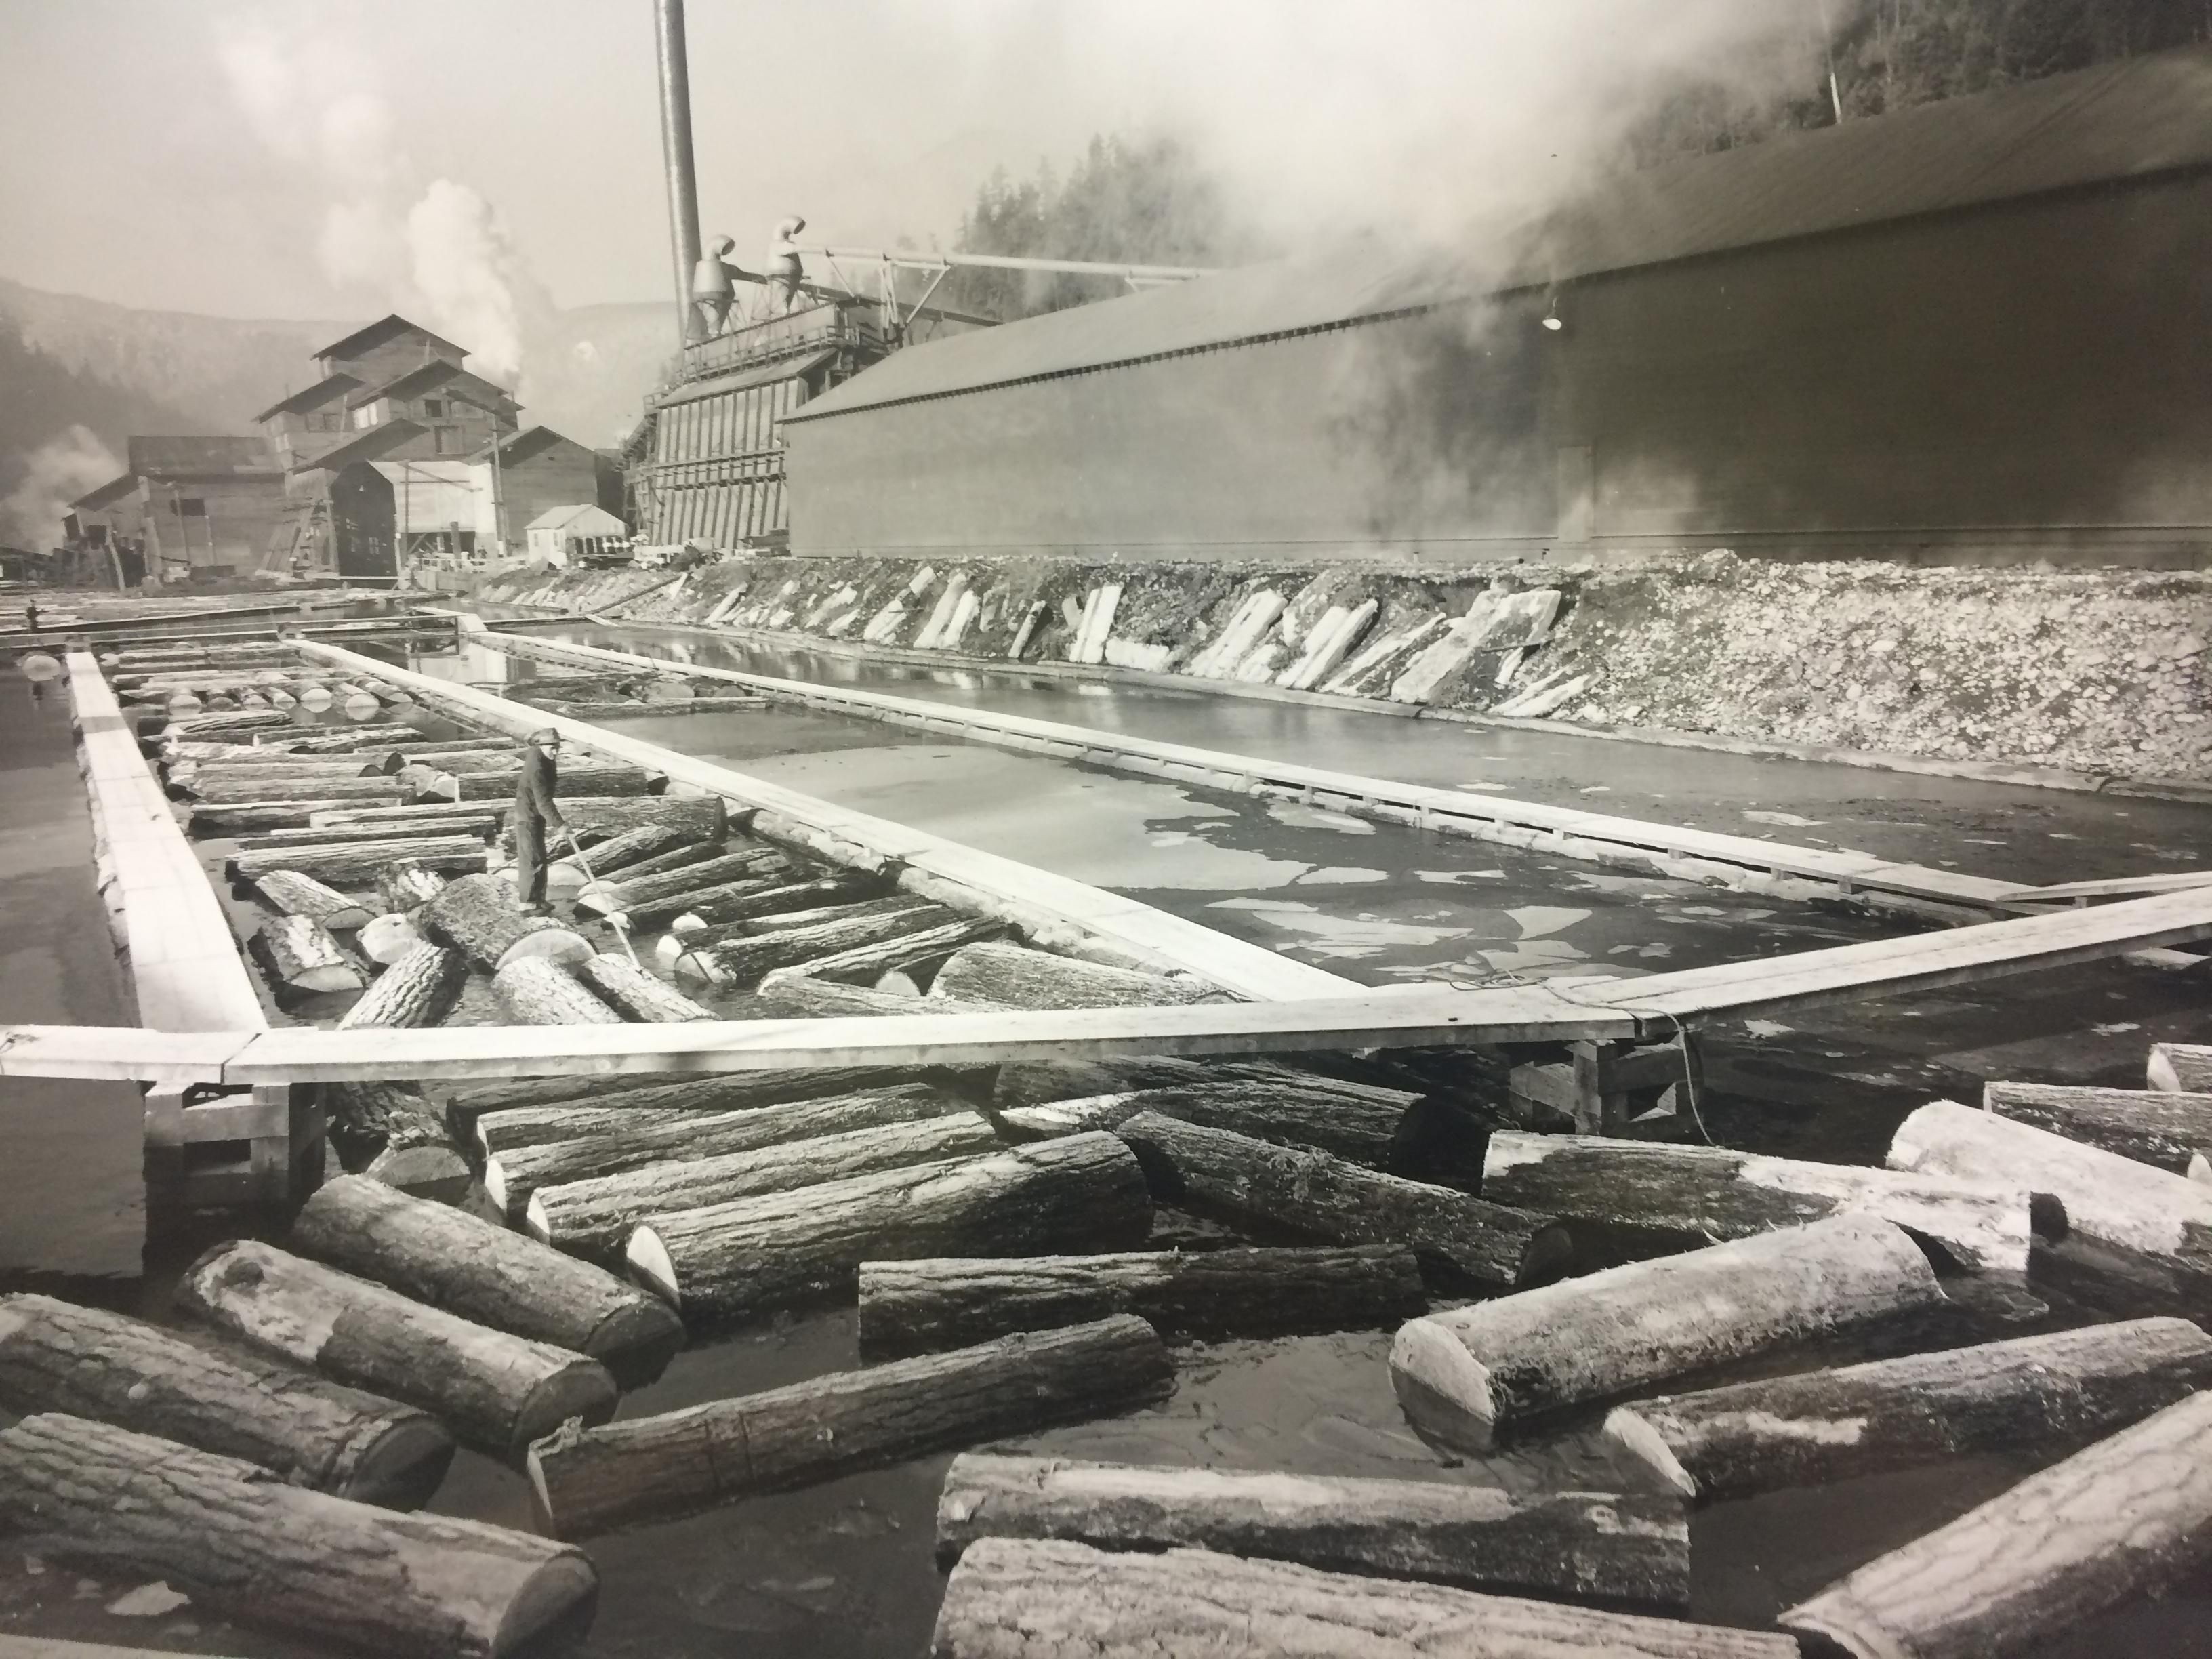 Oakridge lost a main attraction when several logging mills closed and nearly a third of the town was out of work. But now, Oakridge residents are finding new ways to bring people back to the small town in east Lane County. Watch #LiveonKMTR Monday, May 8 at 6:30 p.m. to learn more. Photo courtesy Oakridge Museum